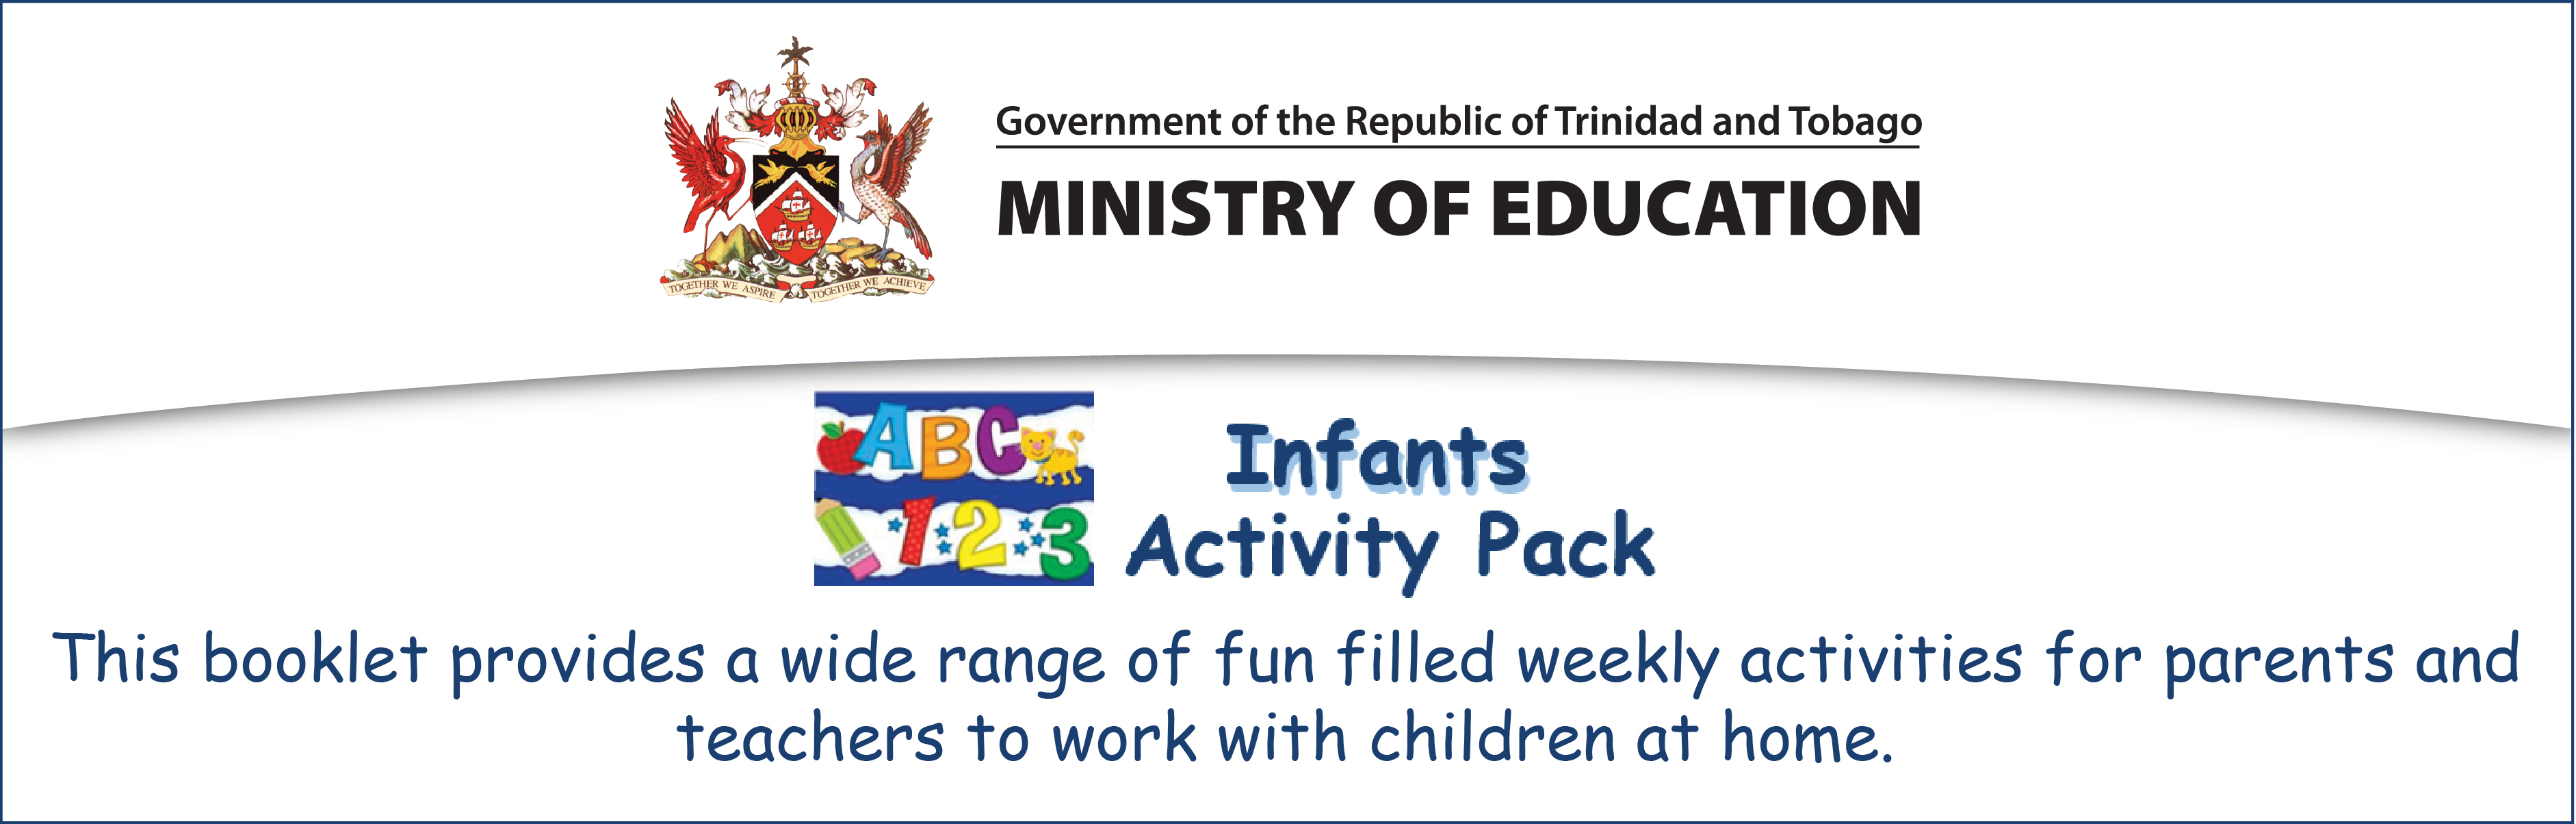 Infants Activity Pack